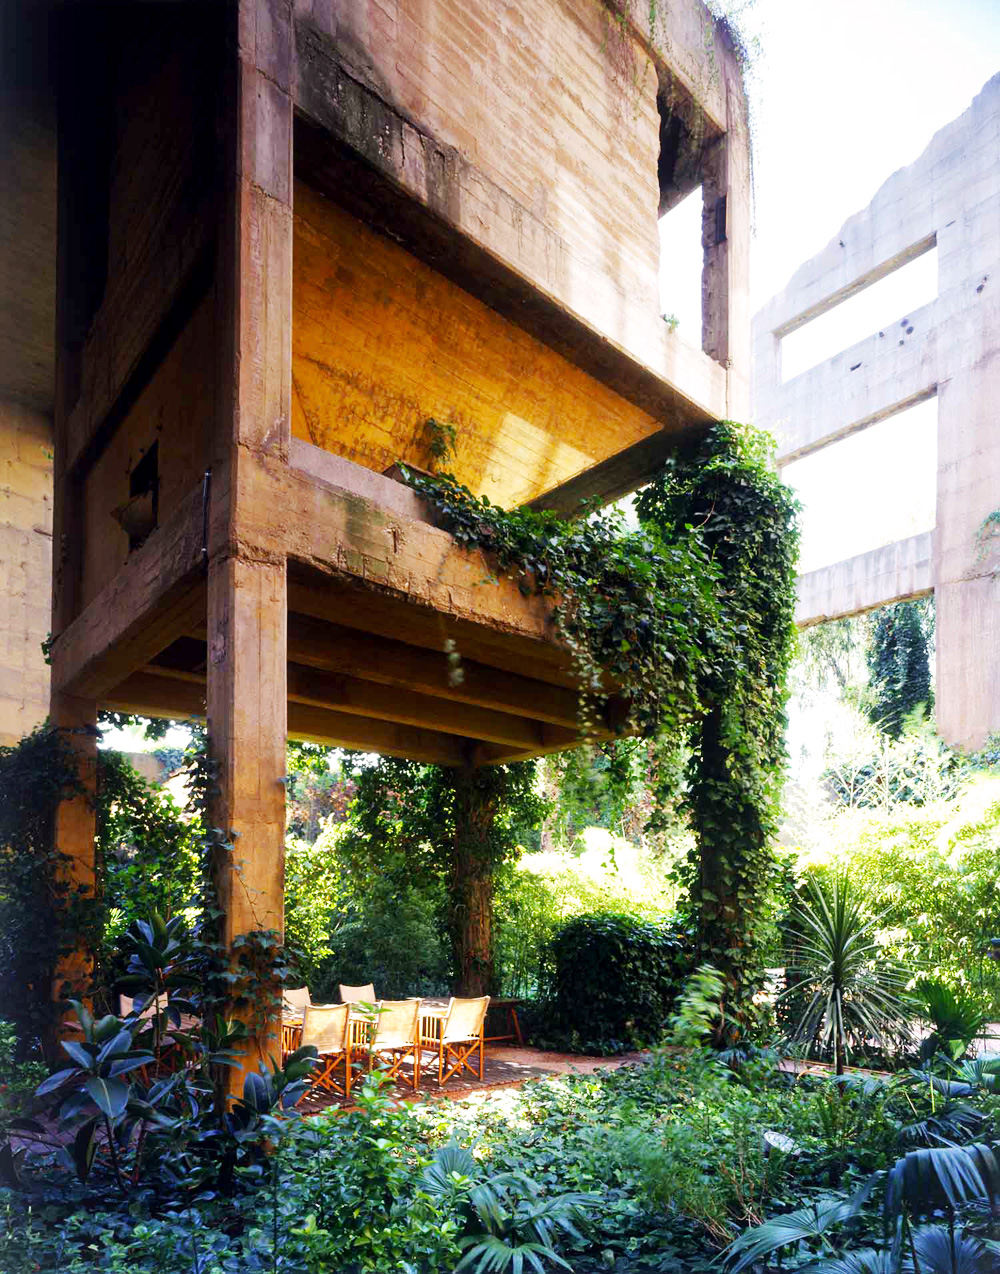 Ricardo-Bofill-Home-Old-Cement-Factory-Spain-Yellowtrace-11_1